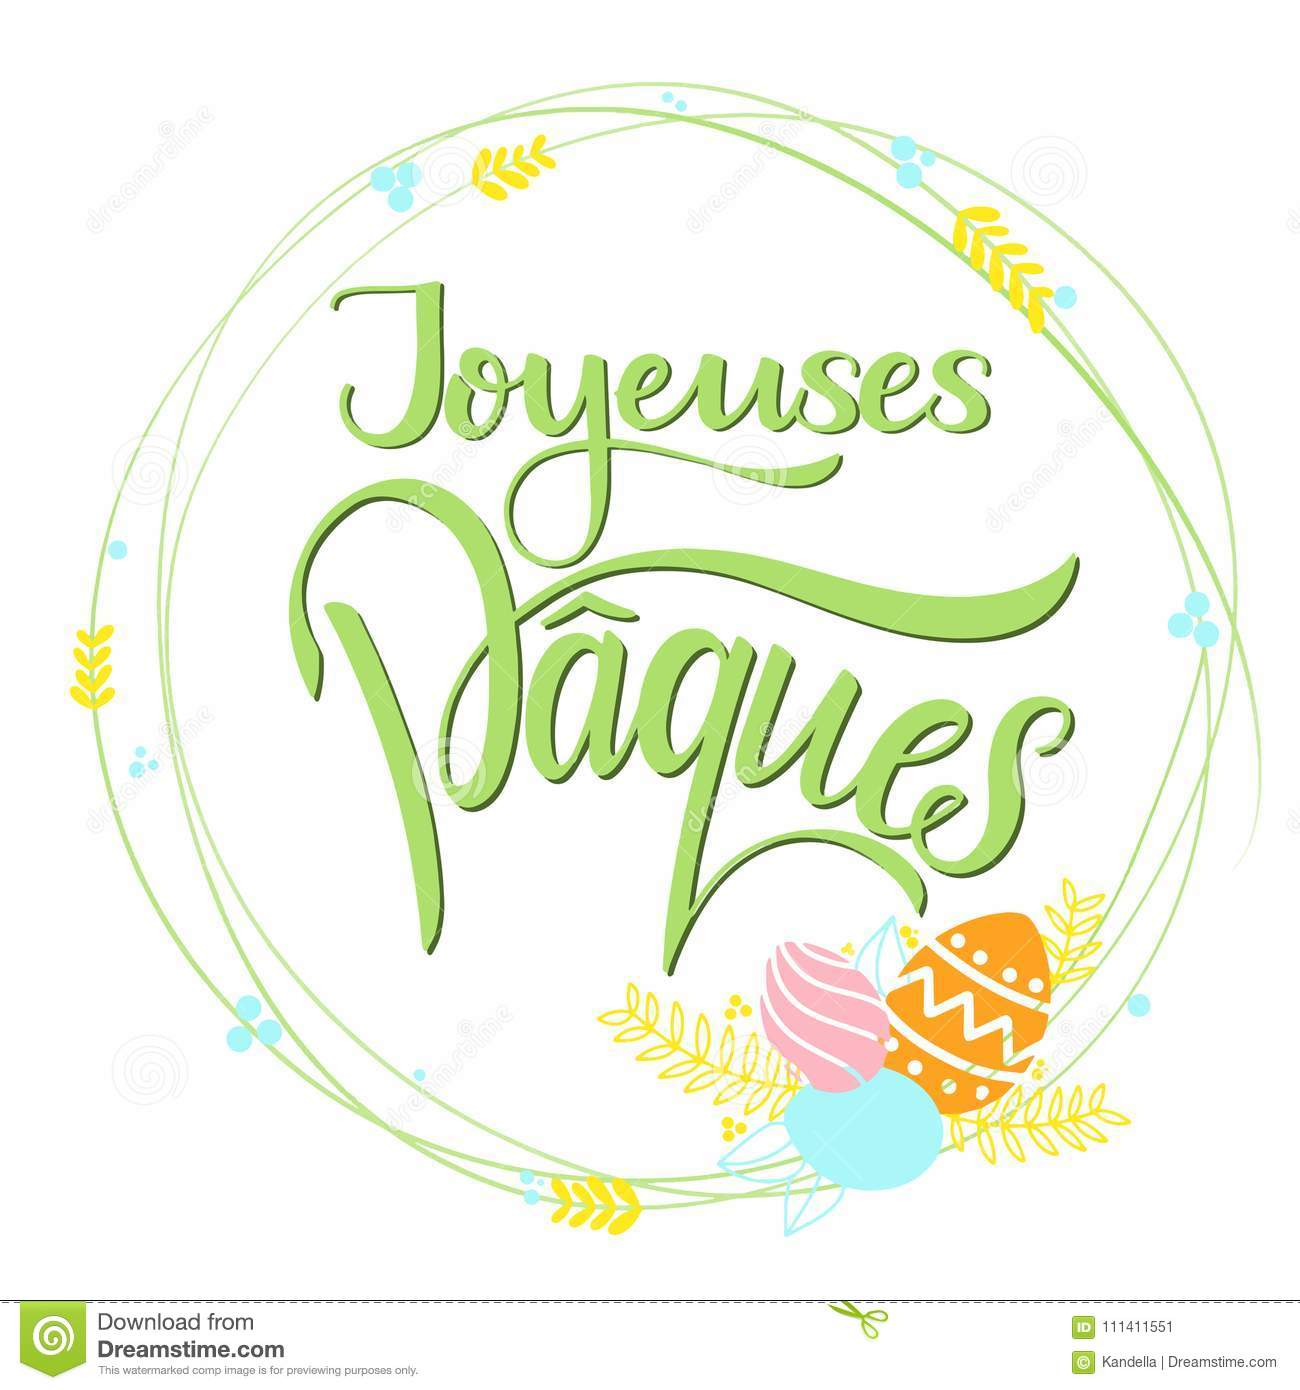 Joyeuses Paques Colorful Lettering Stock Vector Illustration Of